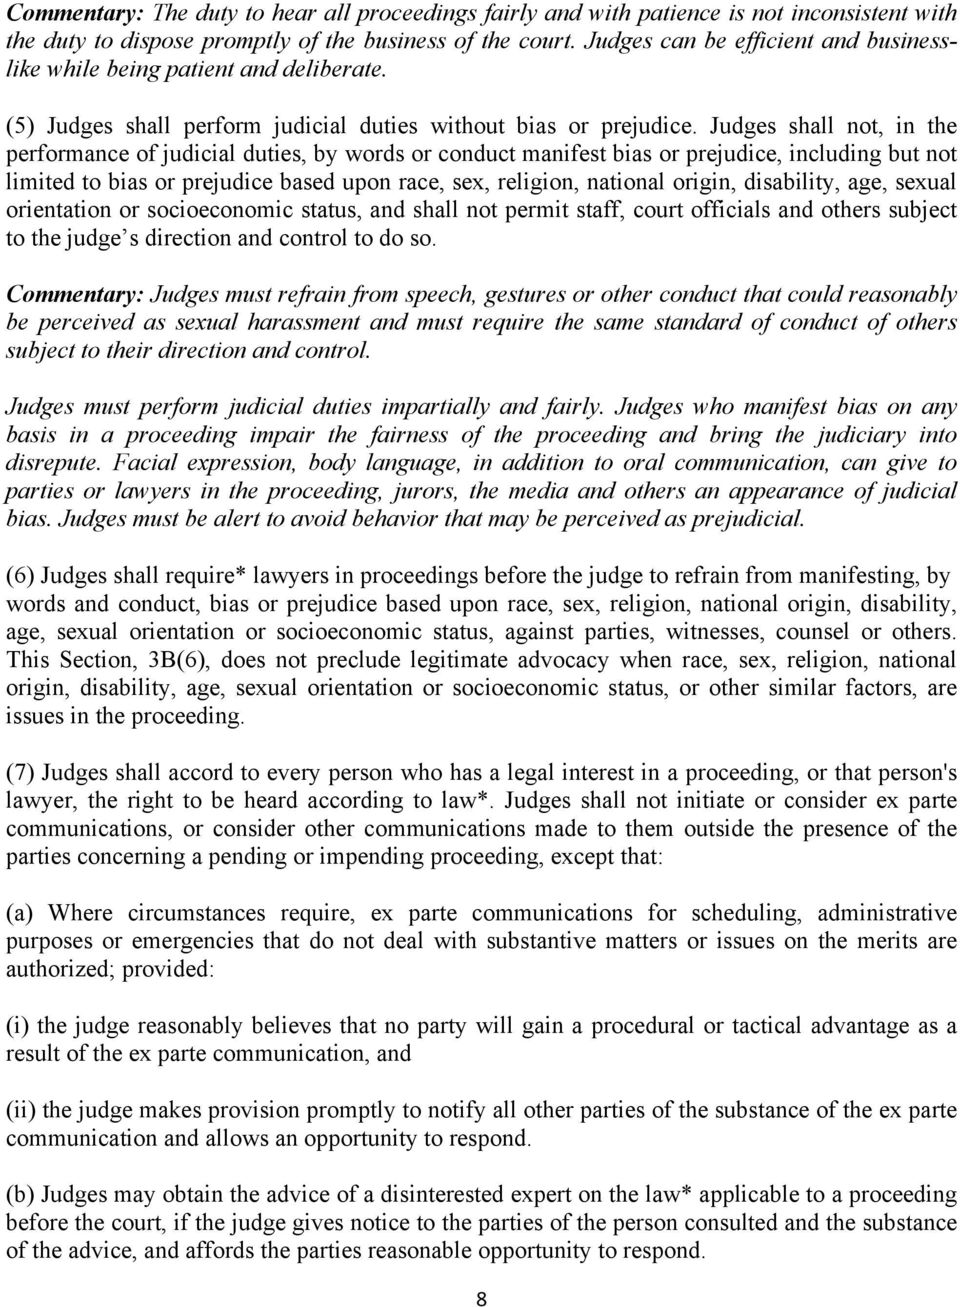 Judges shall not, in the performance of judicial duties, by words or conduct manifest bias or prejudice, including but not limited to bias or prejudice based upon race, sex, religion, national